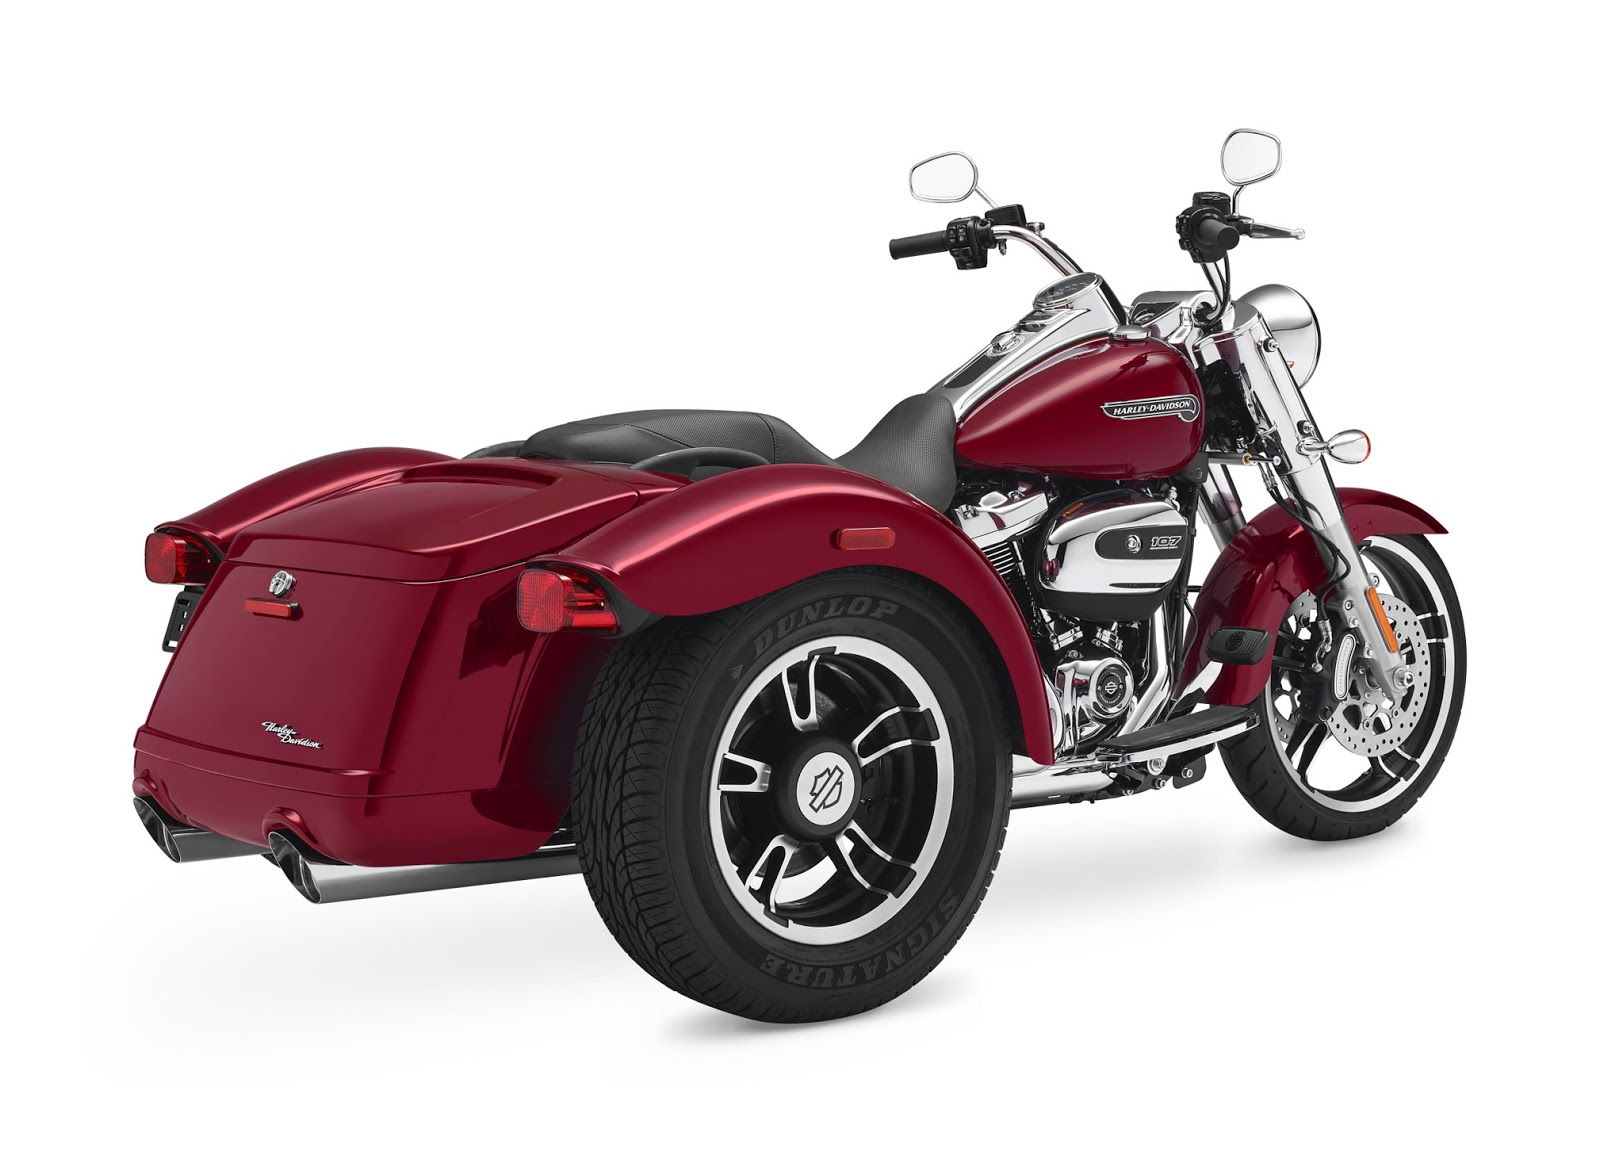 harley davidson tri glide trike freewheeler owner 39 s manual. Black Bedroom Furniture Sets. Home Design Ideas